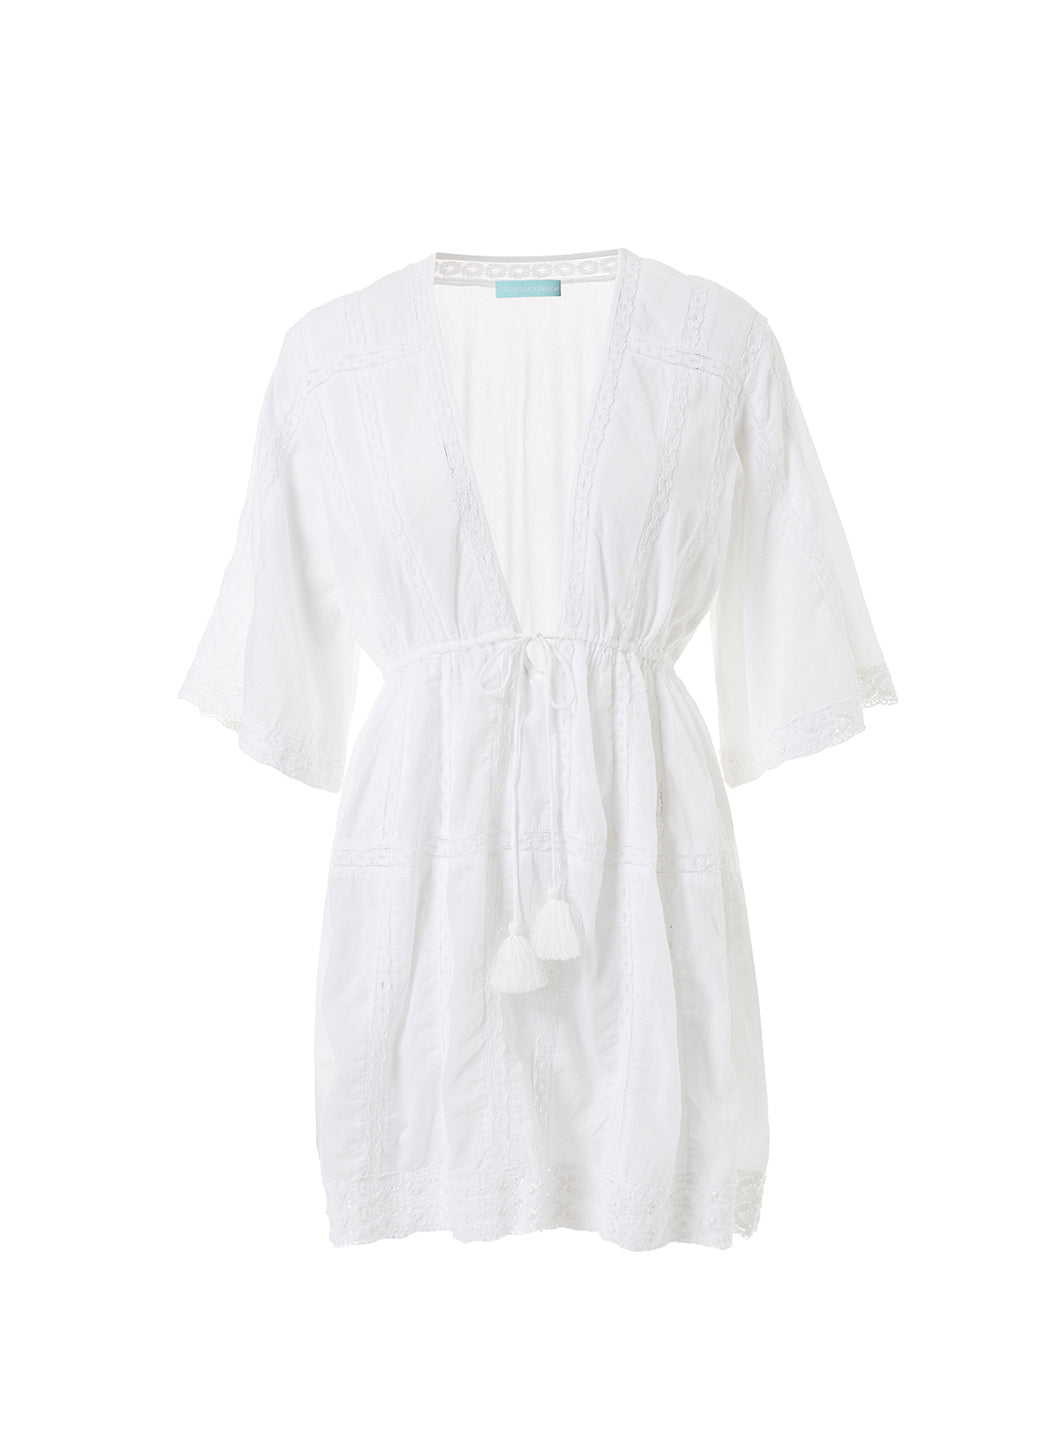 Jade White V-Neck 3/4 Sleeve Beach Dress - Melissa Odabash Dresses & Kaftans